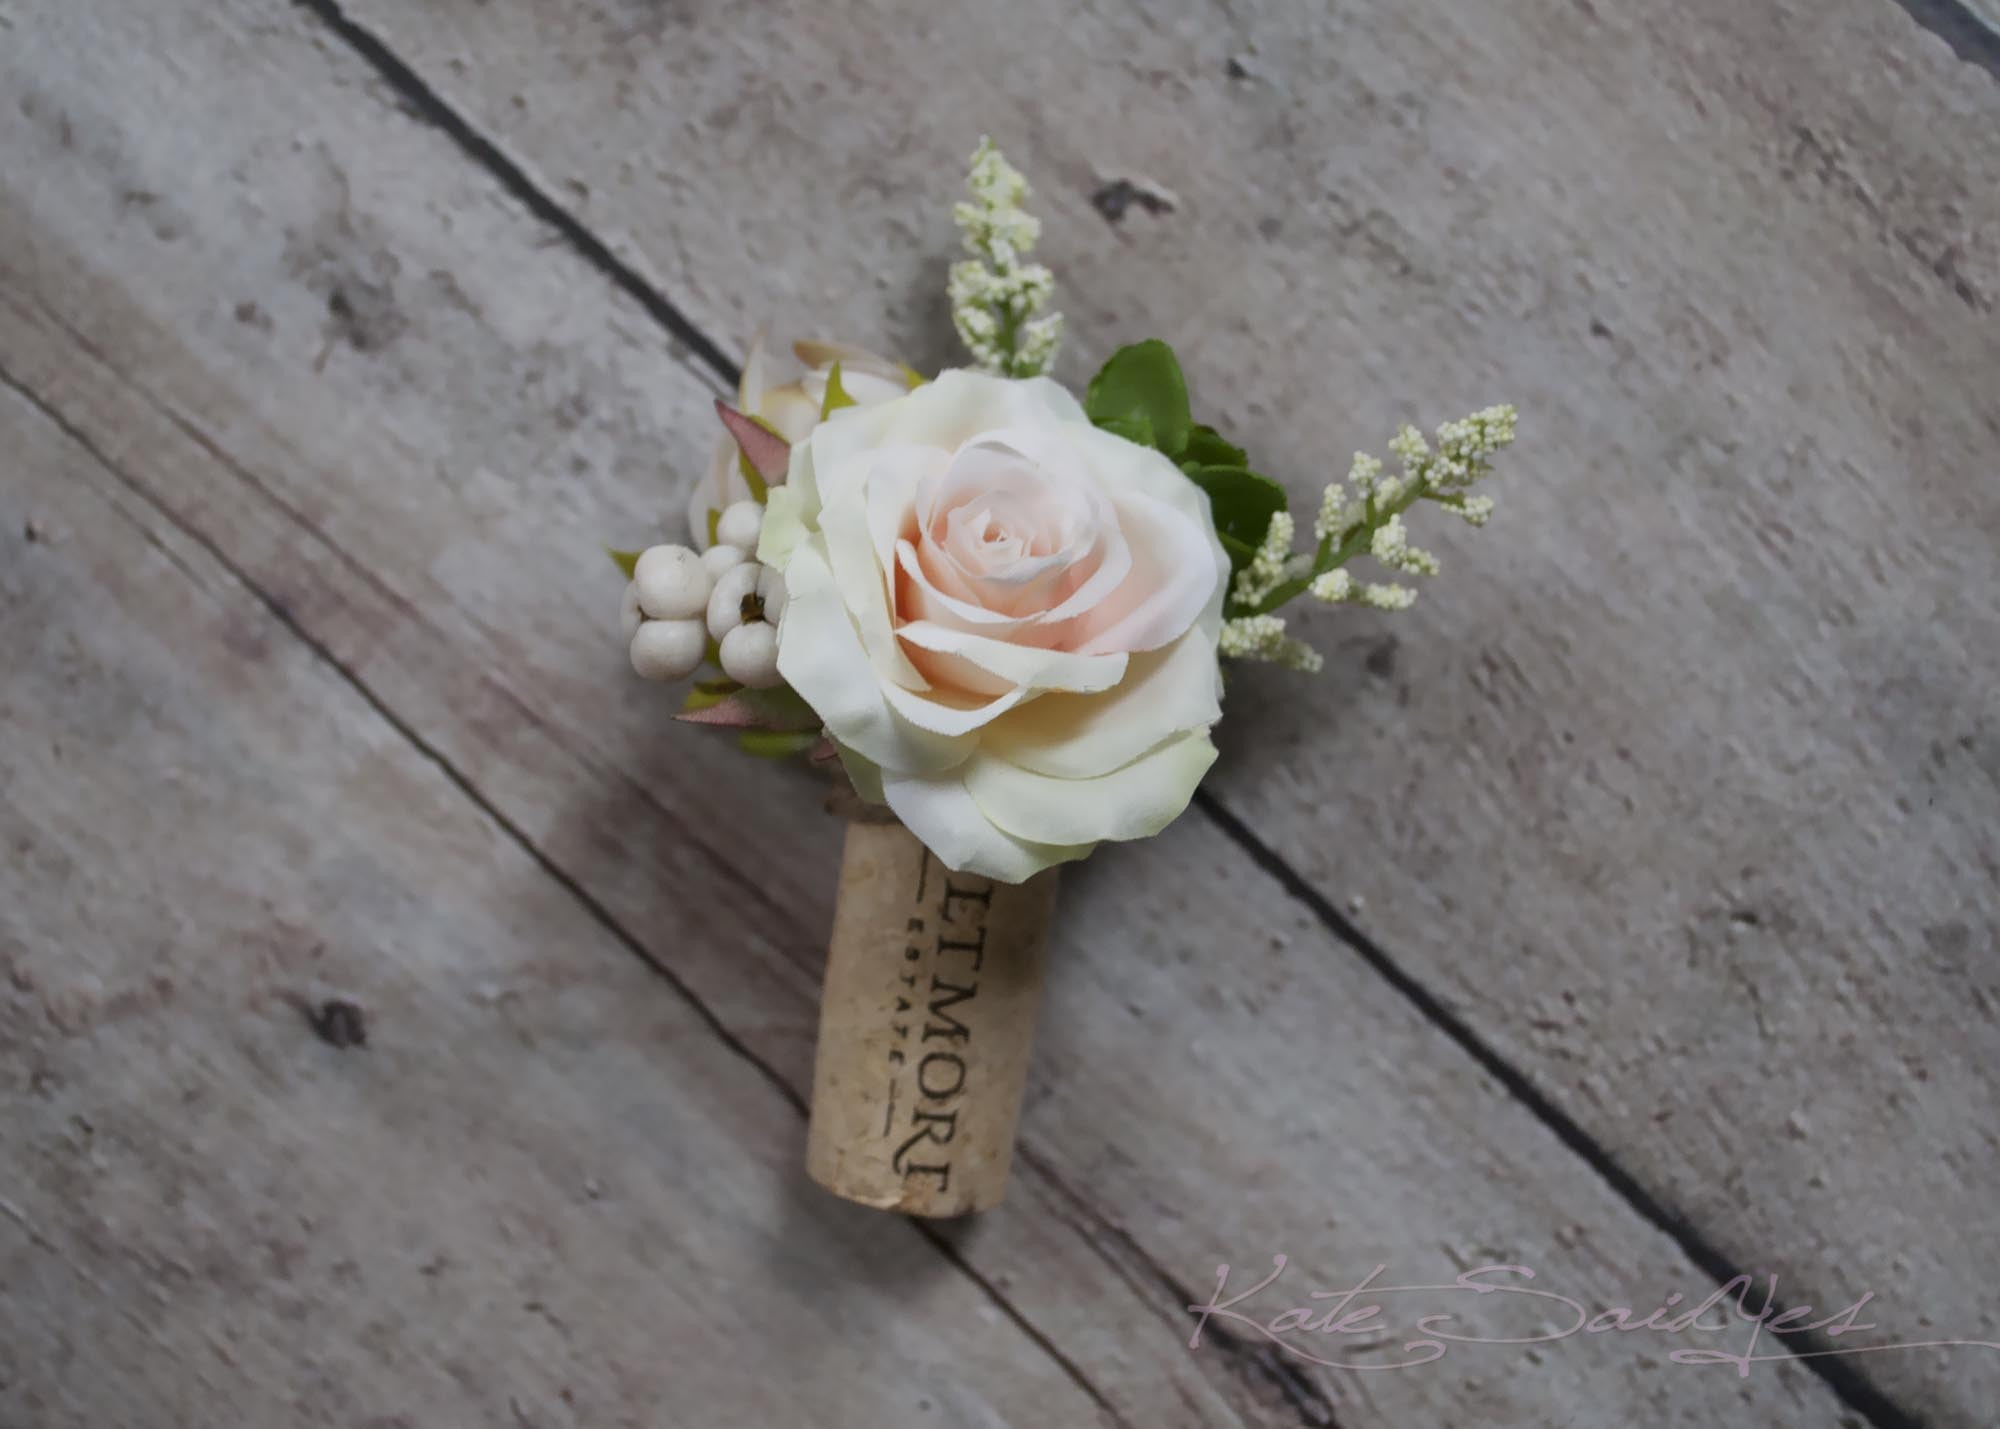 Peach Garden Rose Boutonniere cork boutonniere - peach rose and succulent boutonniere with